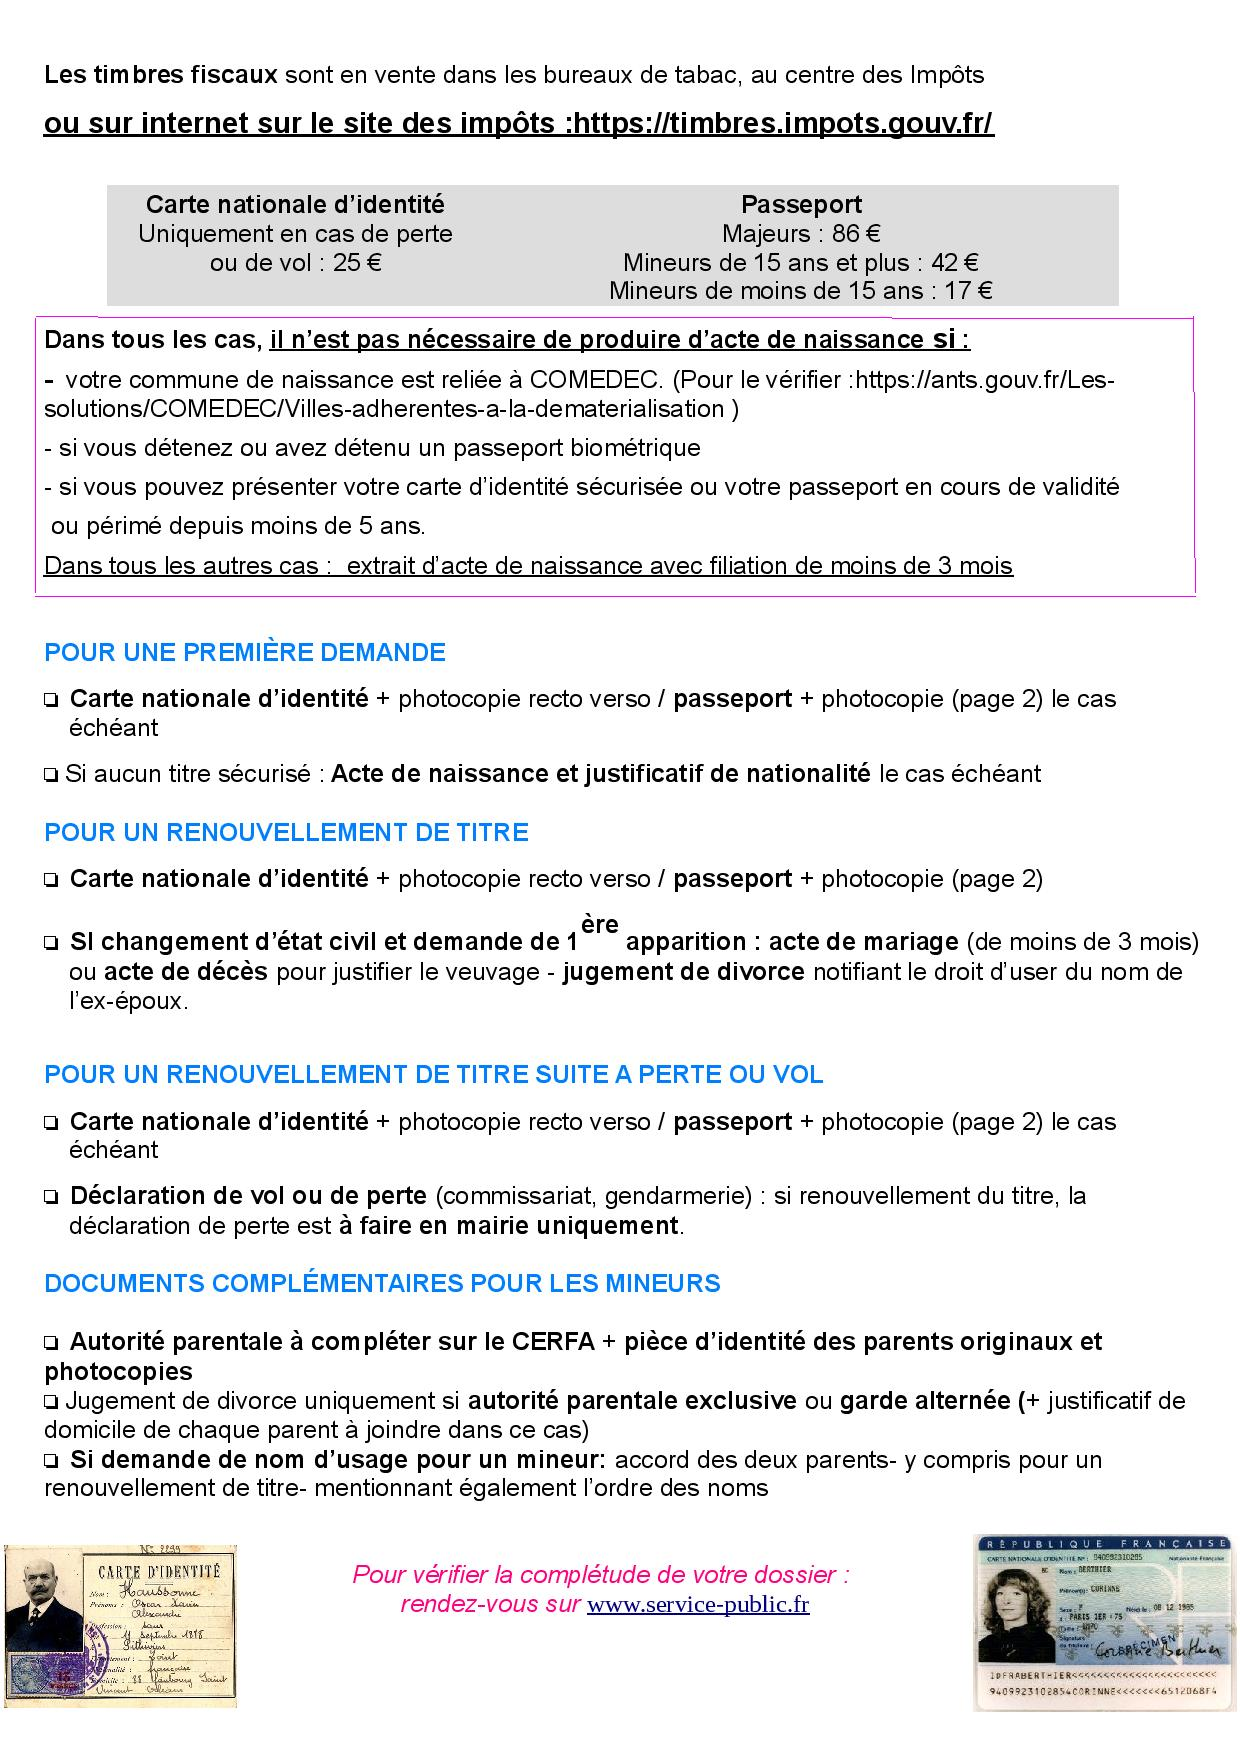 CNI Passeport flyer page 002